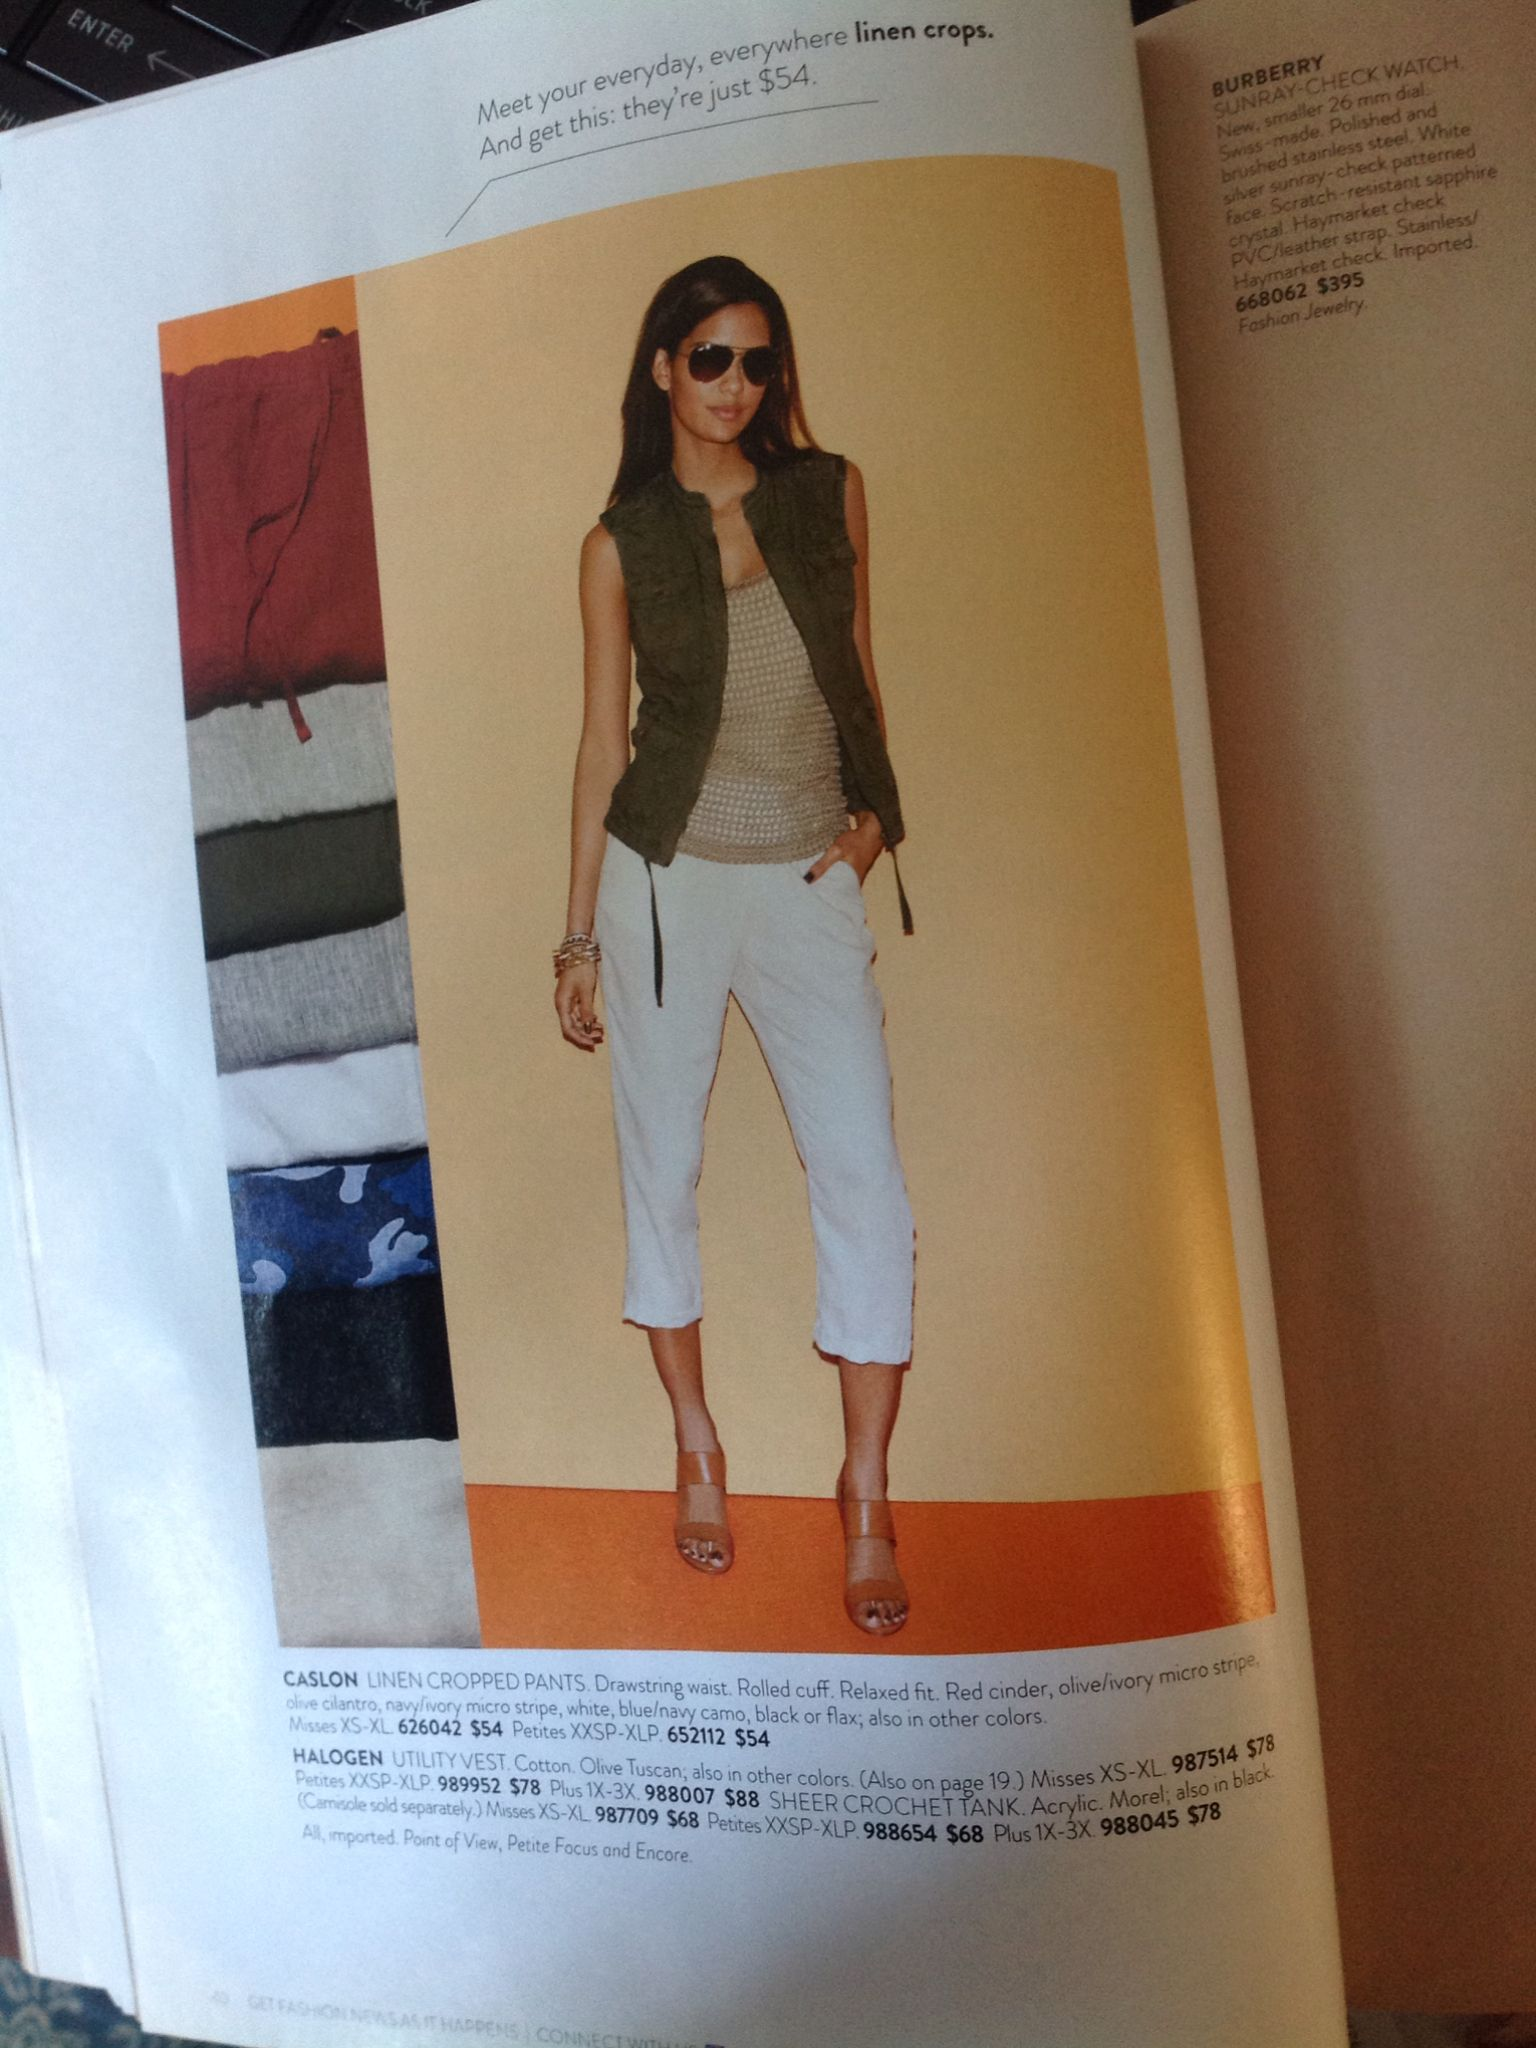 When i'm for-tee -- from Nordstrom catalog